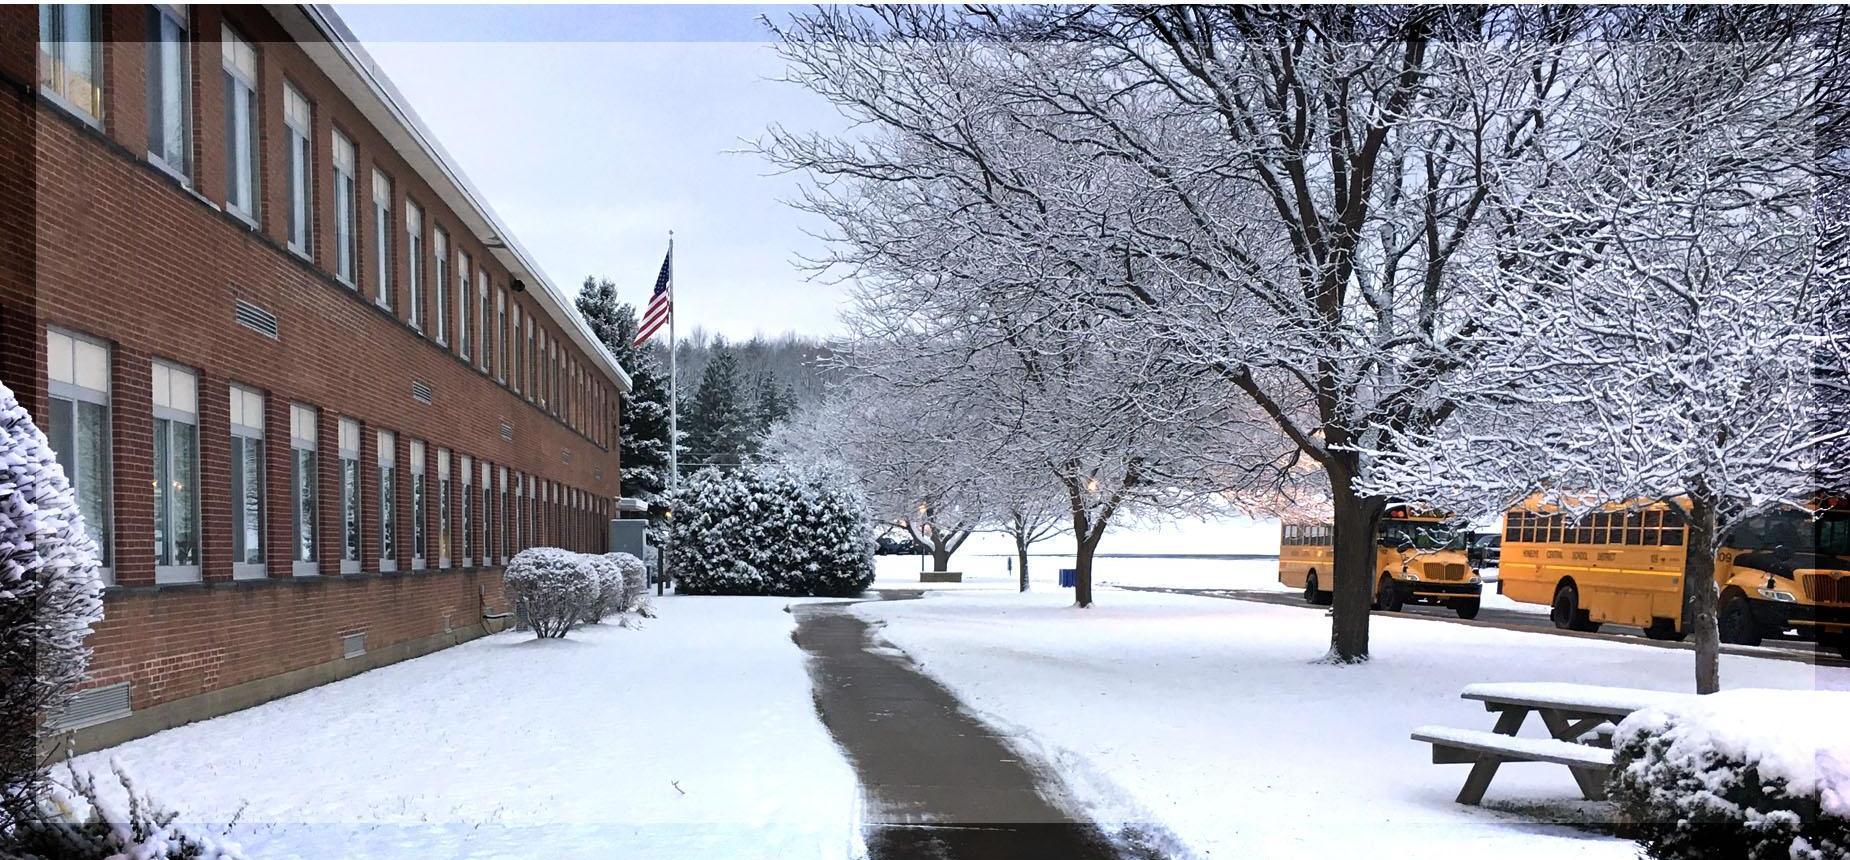 Photograph of the school and buses in the midst of snow.